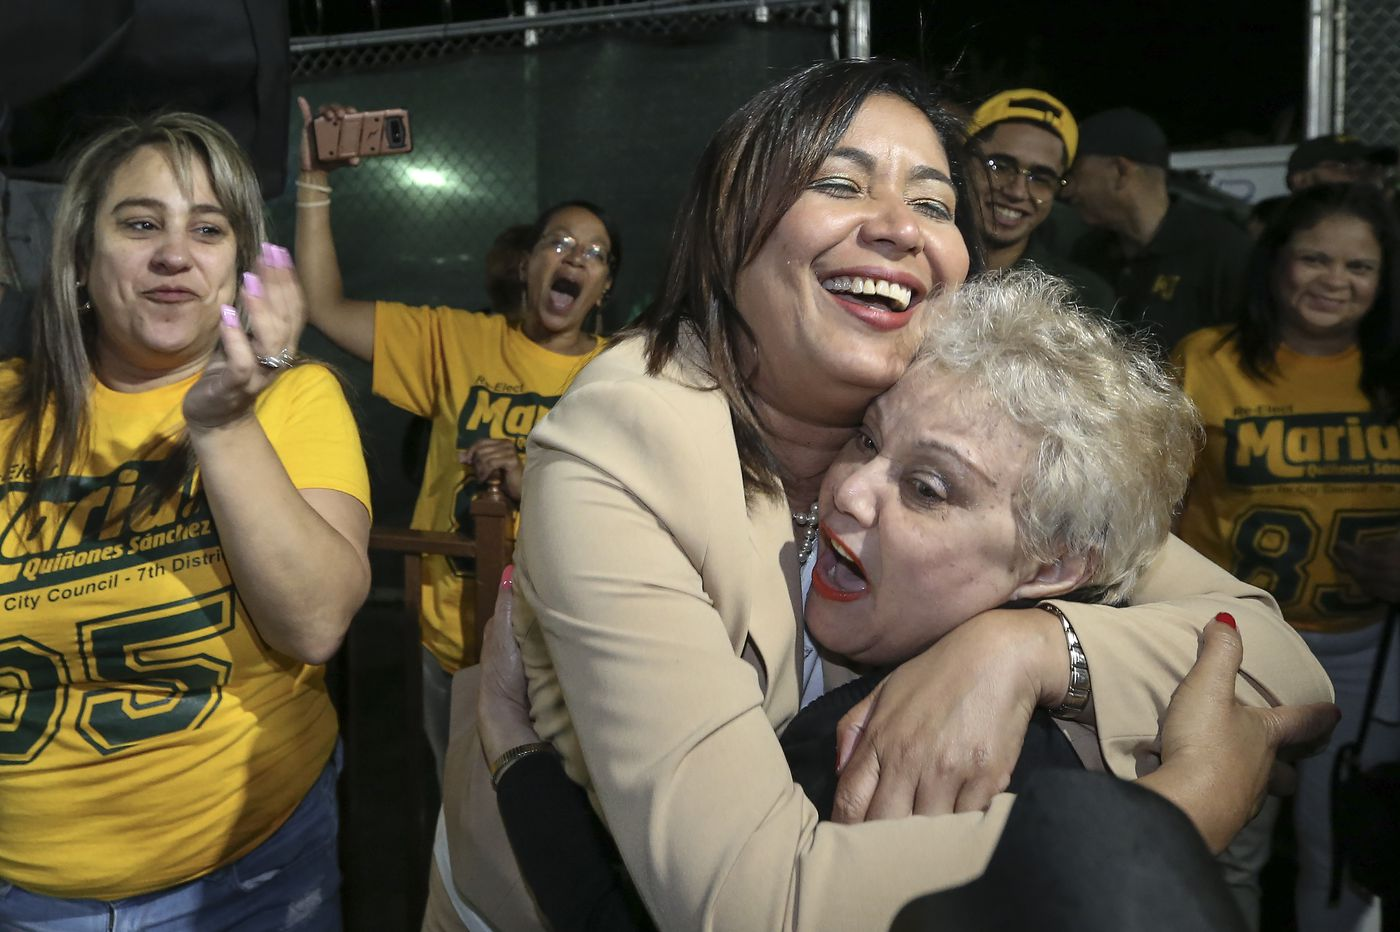 María Quiñones-Sánchez claims victory in District 7 City Council primary election